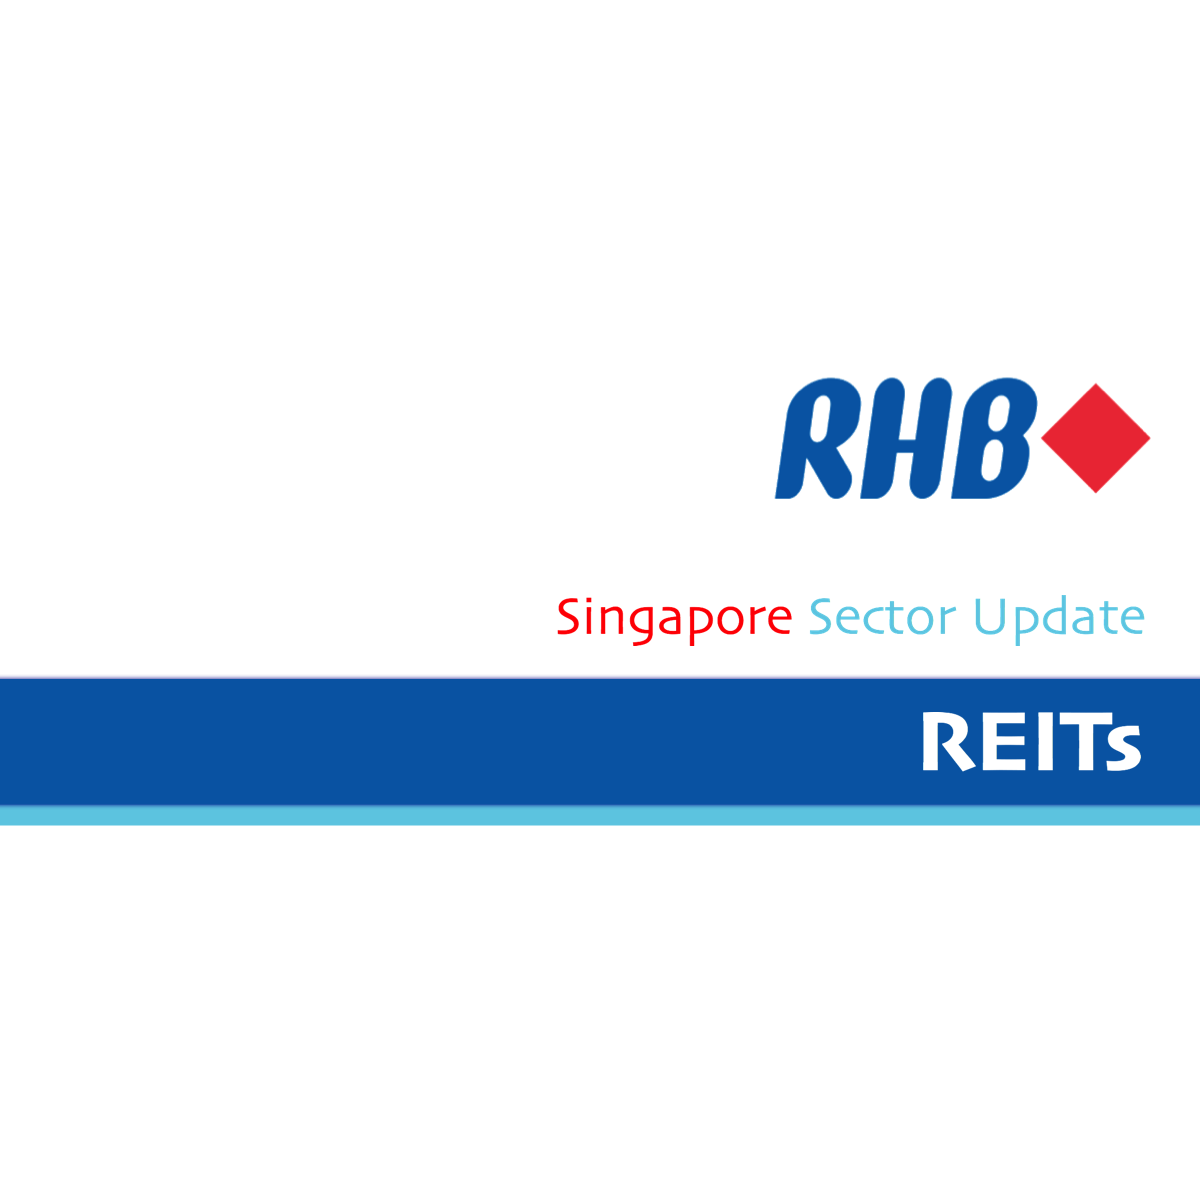 REITs - RHB Invest 2017-01-03: SREITs To Remain Resilient